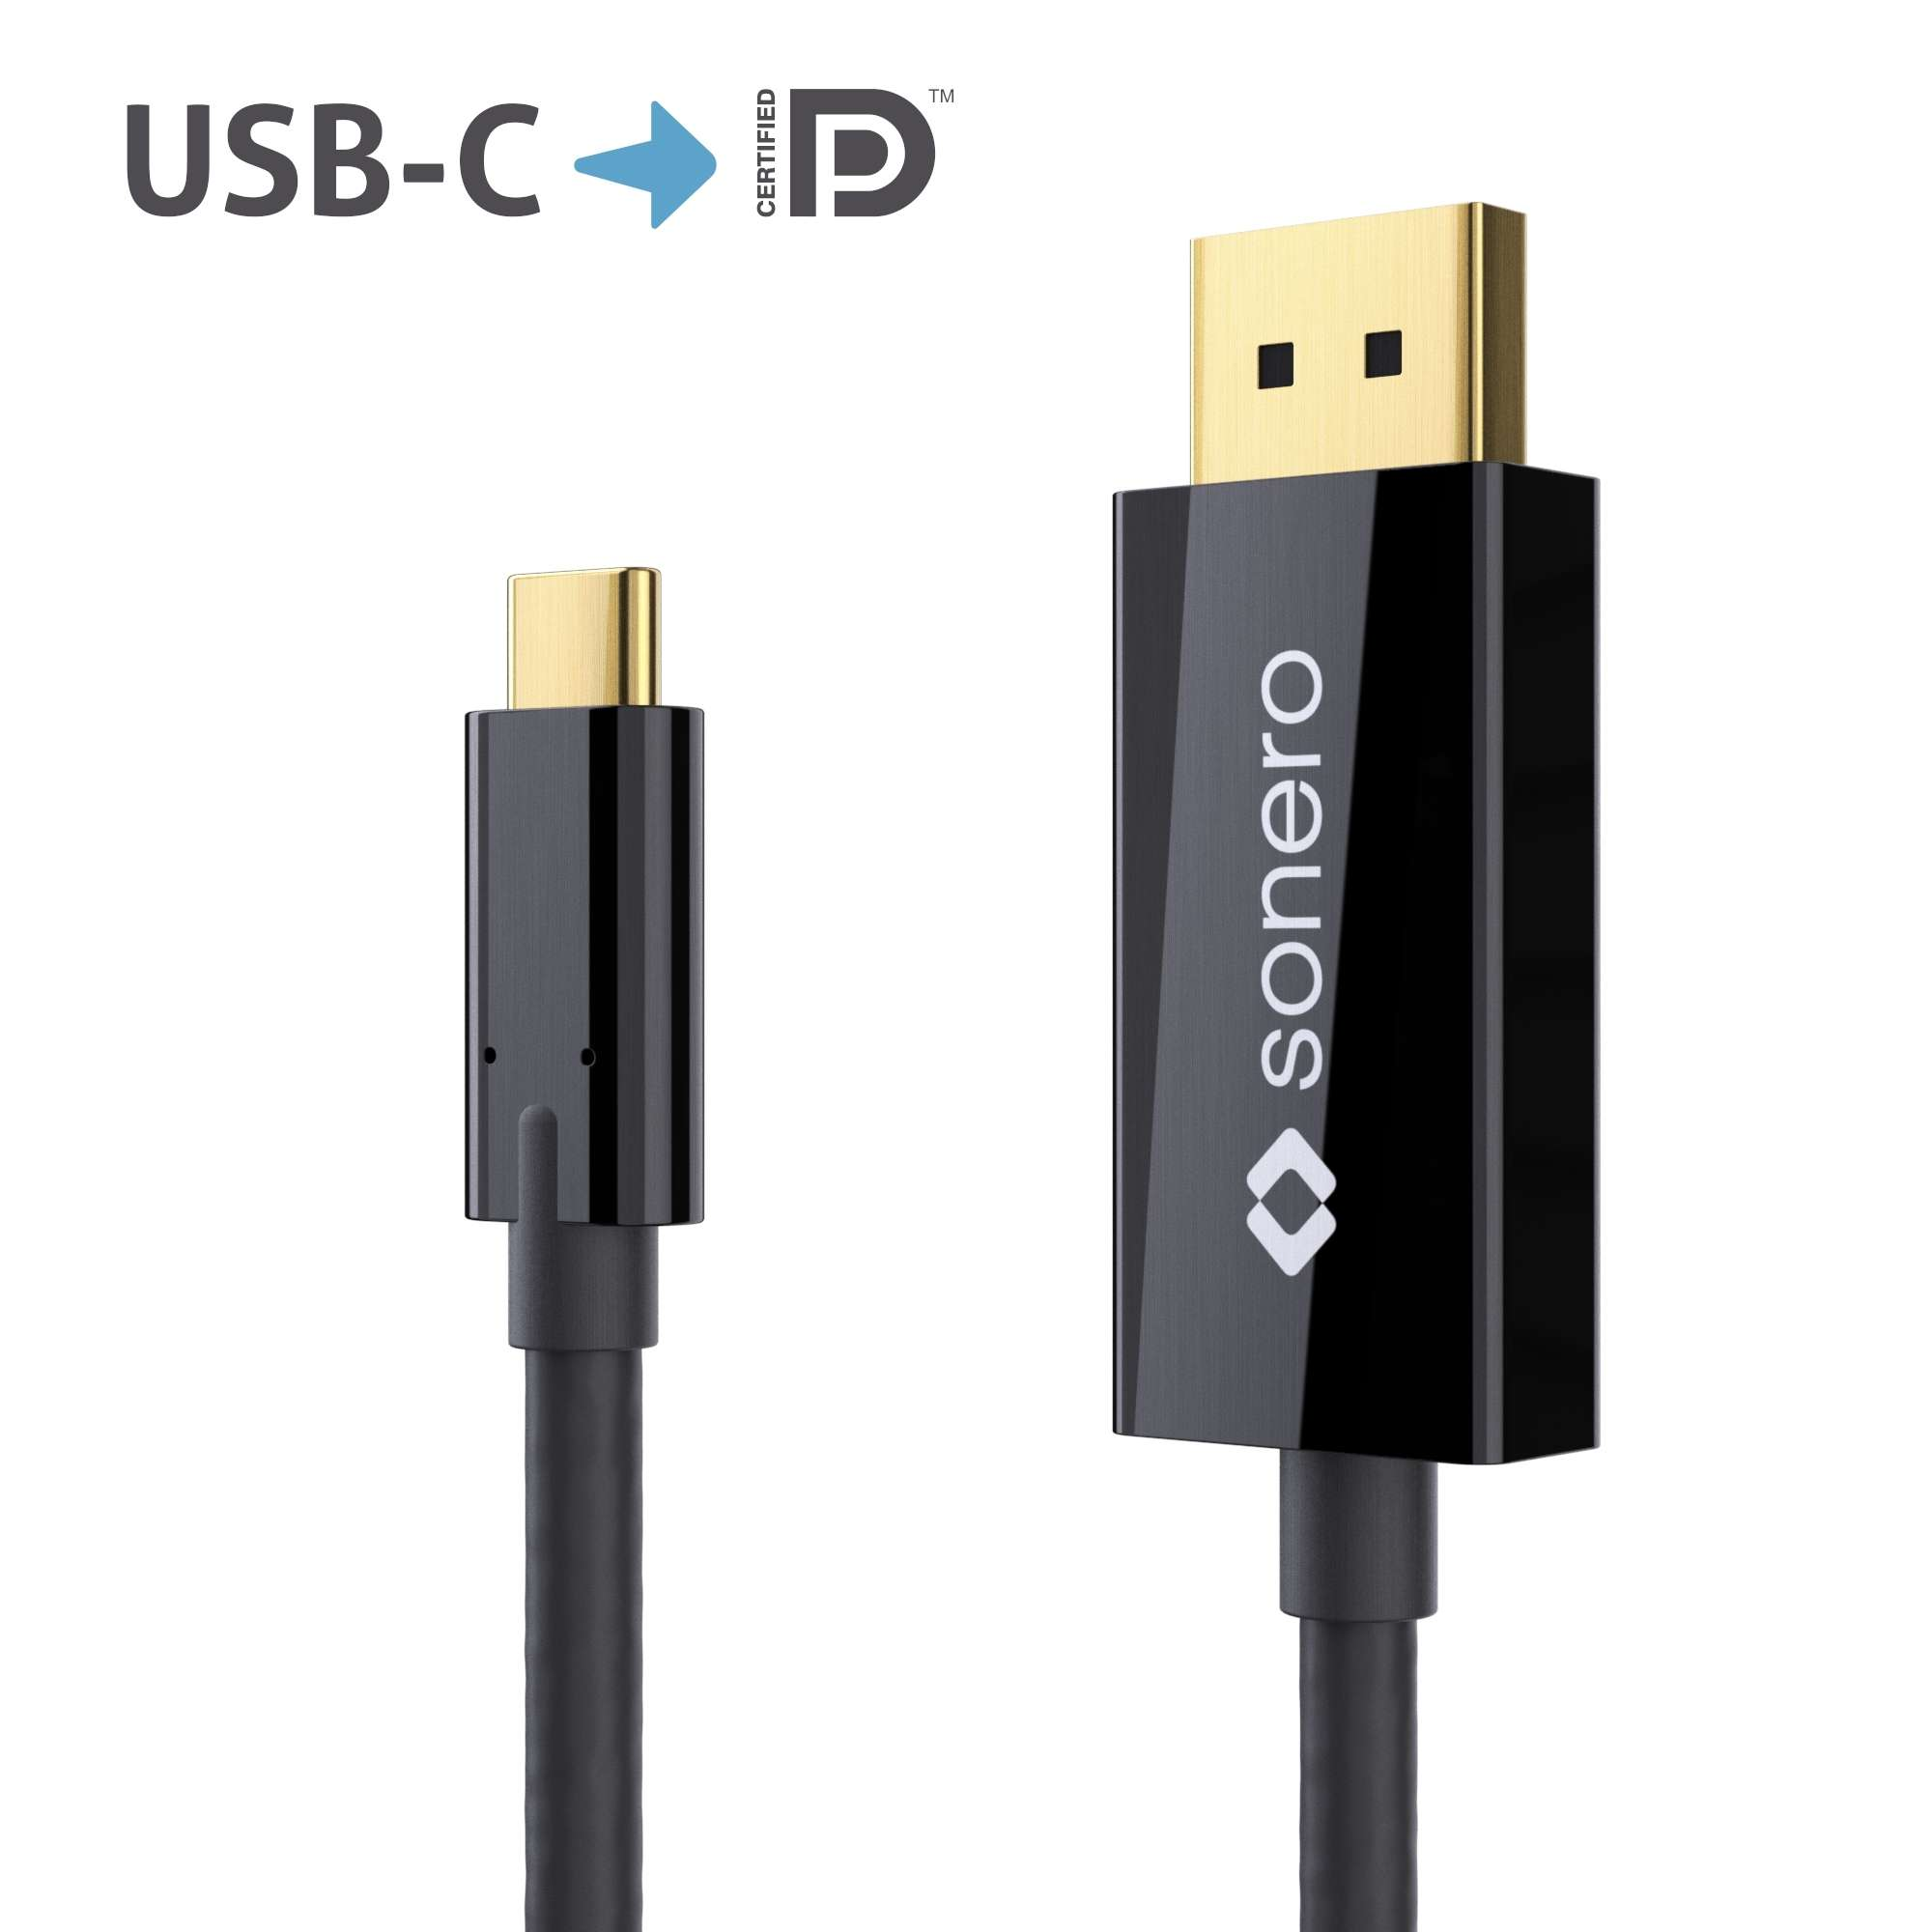 Usb C To Dp Cable Mode 4k60 200m Black Oneav Germany Extension 15m Hp Kabel Av Distribution B2b Online Shop